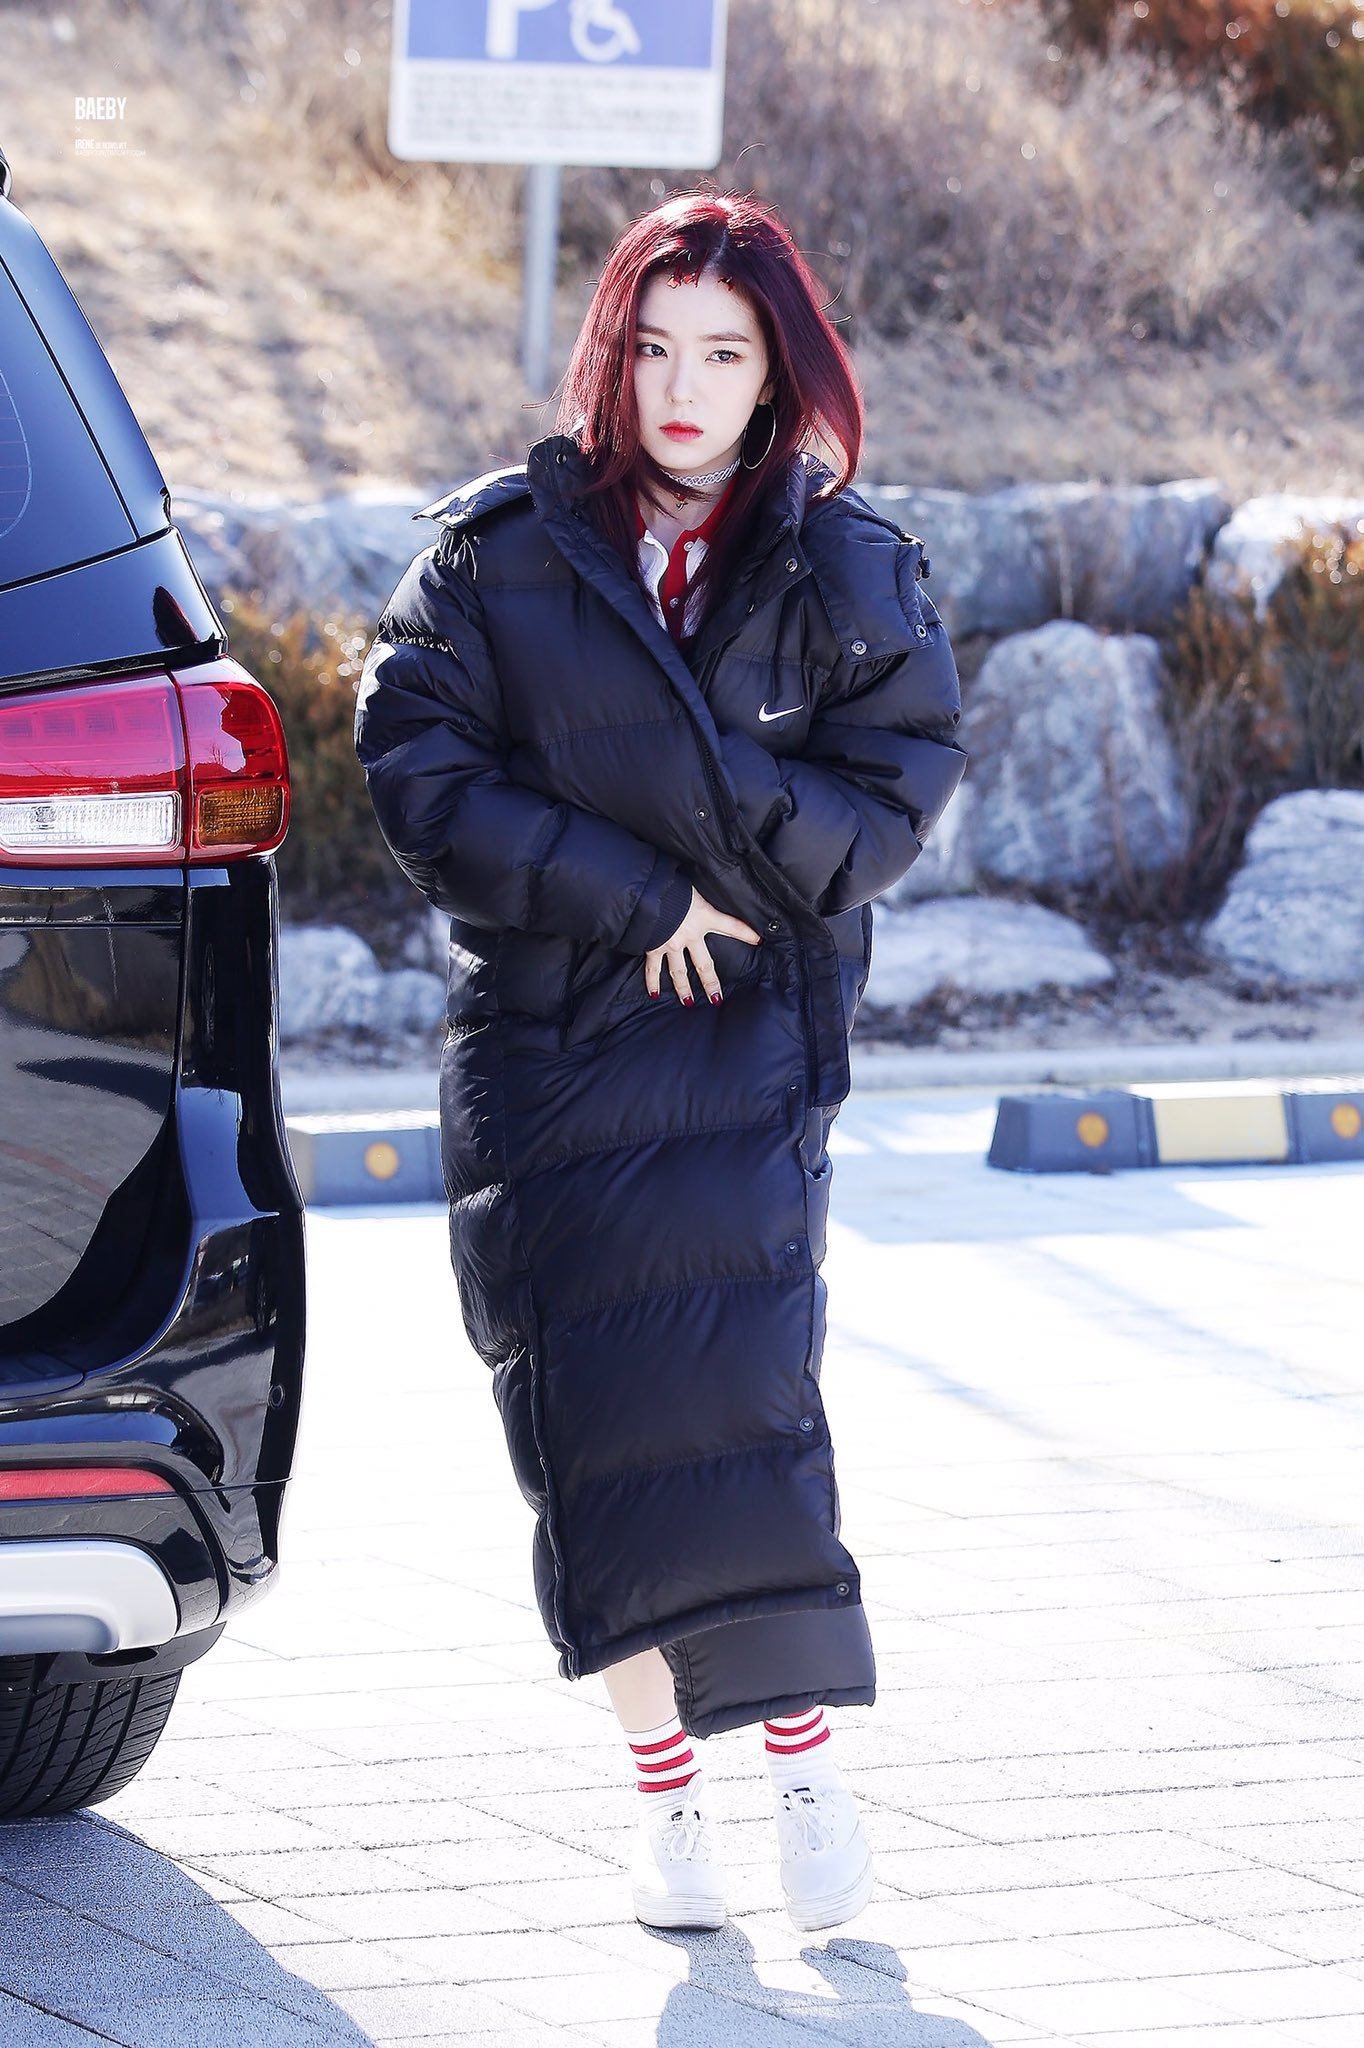 Red Velvet Irene Spotted In Public With New Blood Red Hairstyle